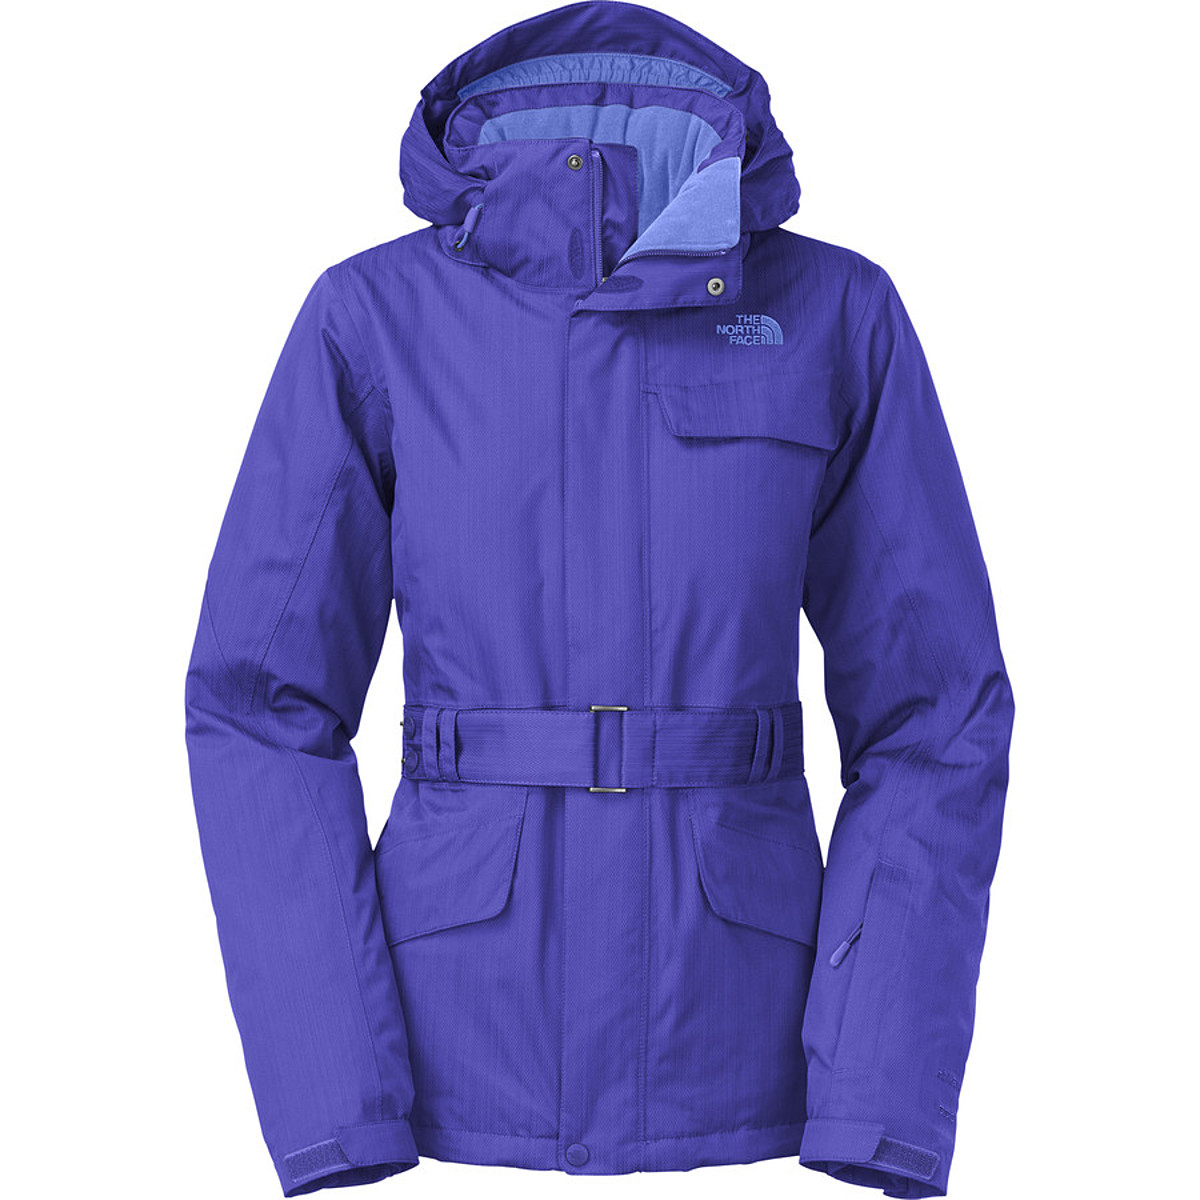 The North Face Get Down Jacket